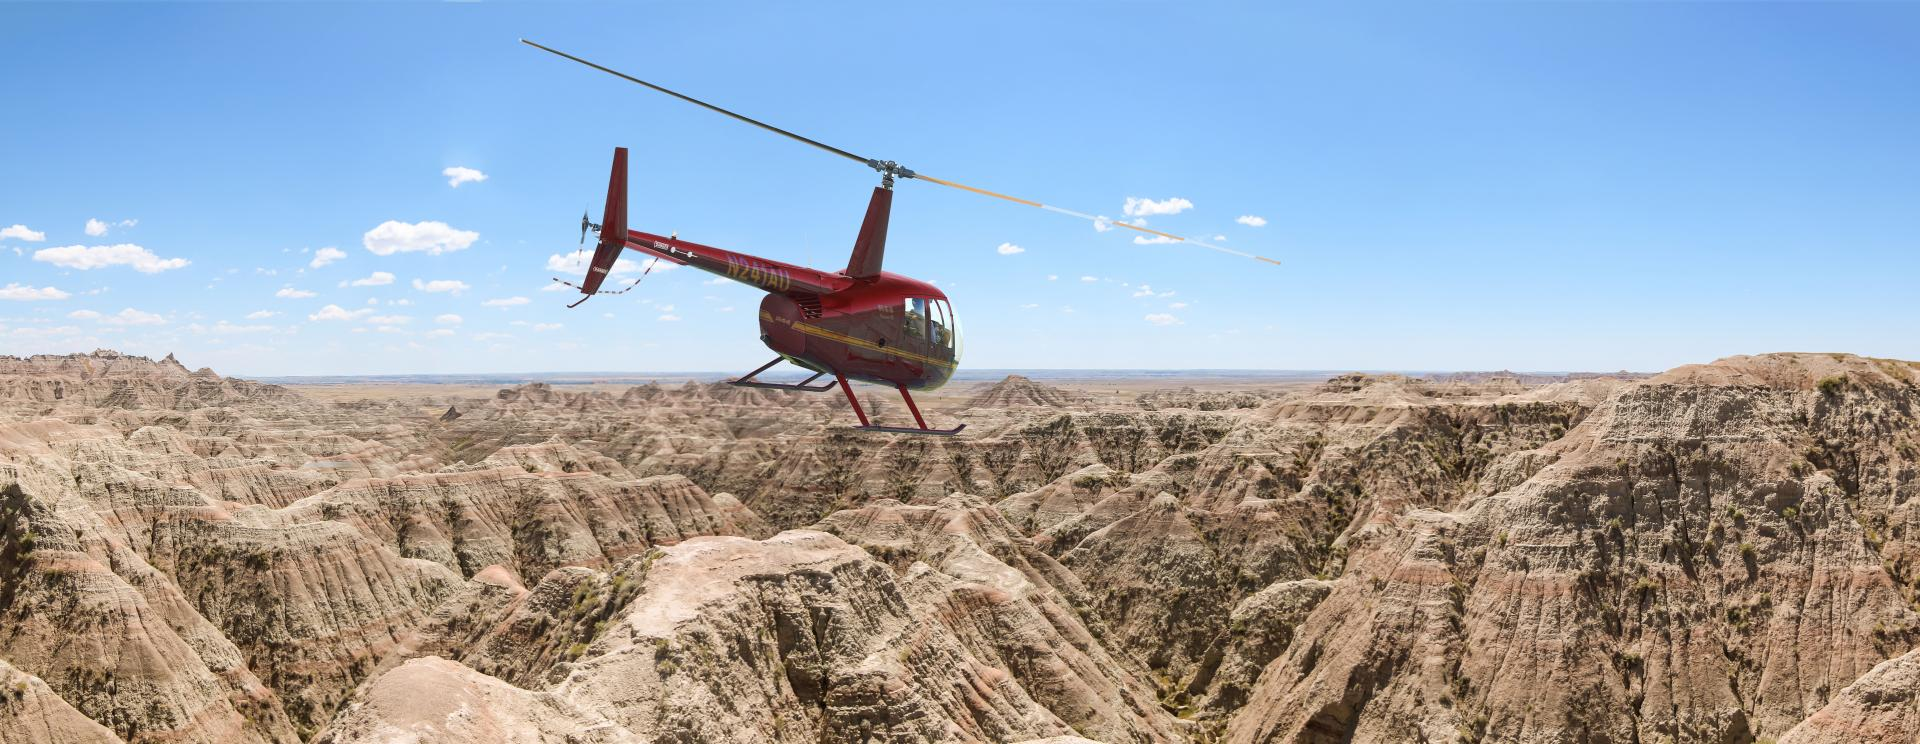 Badlands Helicopters